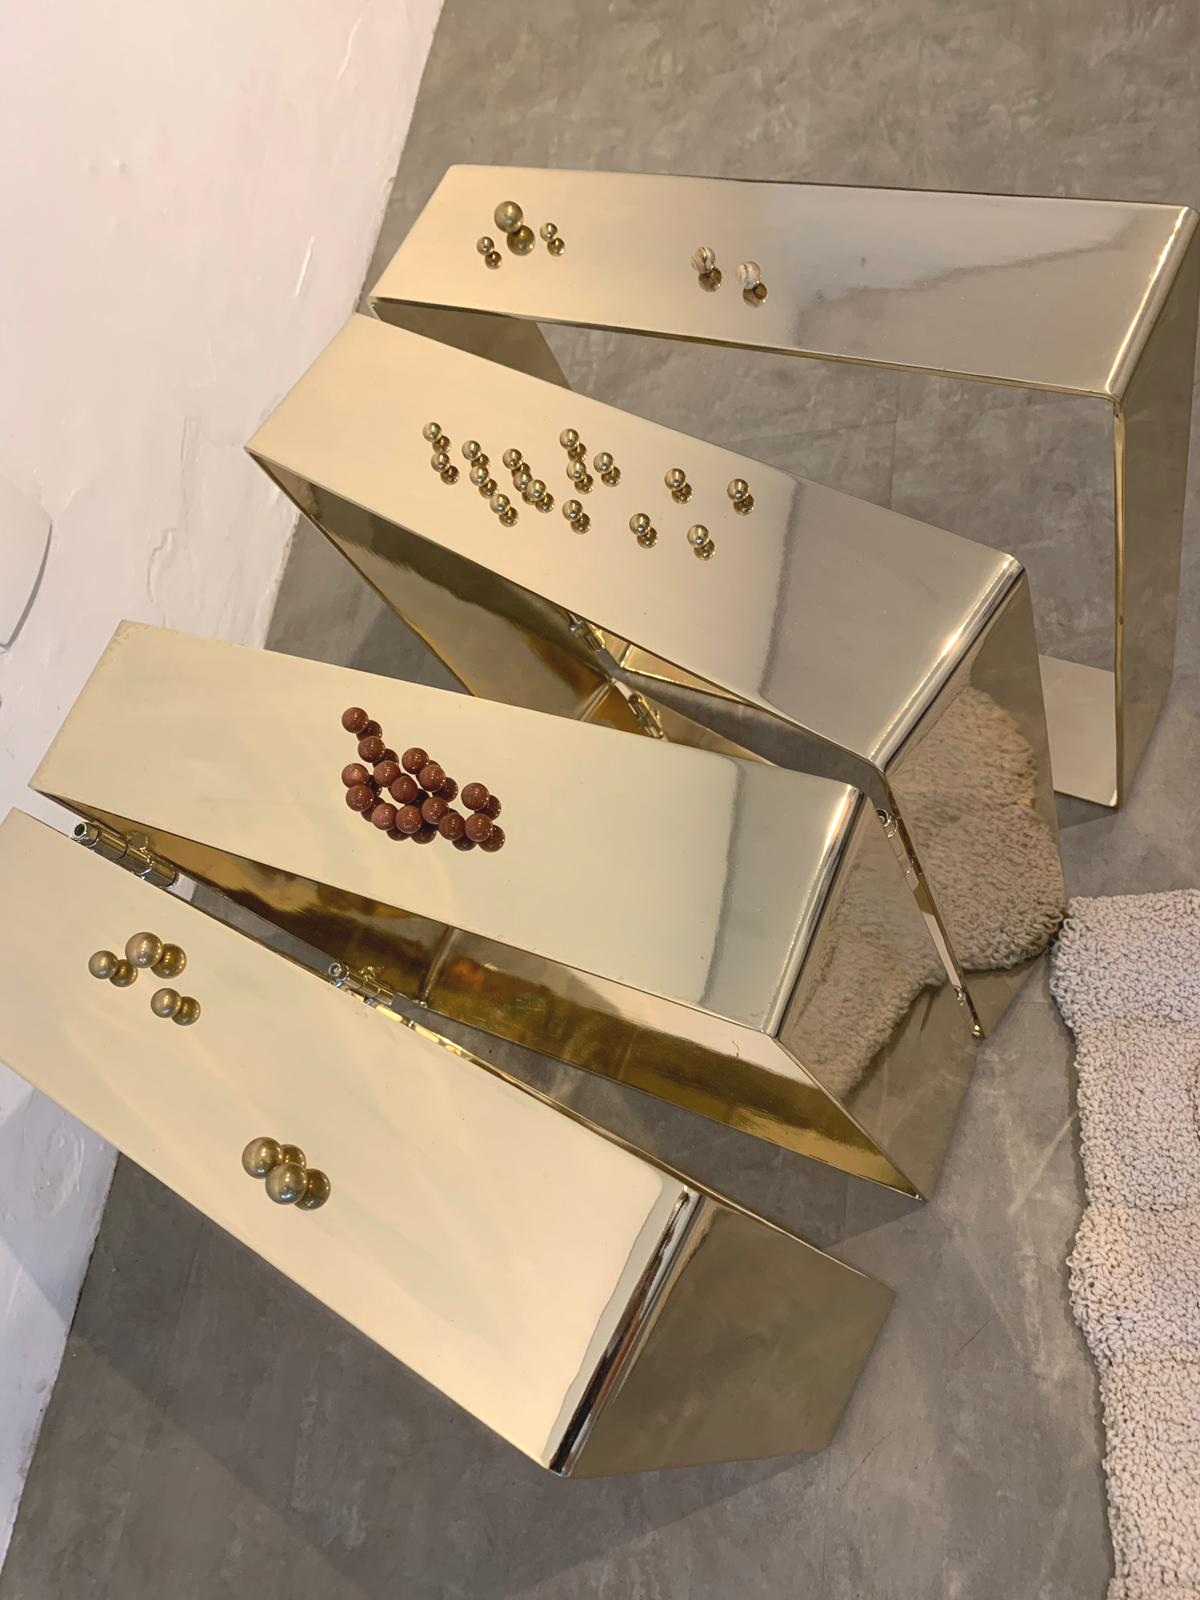 Banco Row / Paolo Ulian, limited edition golden bench